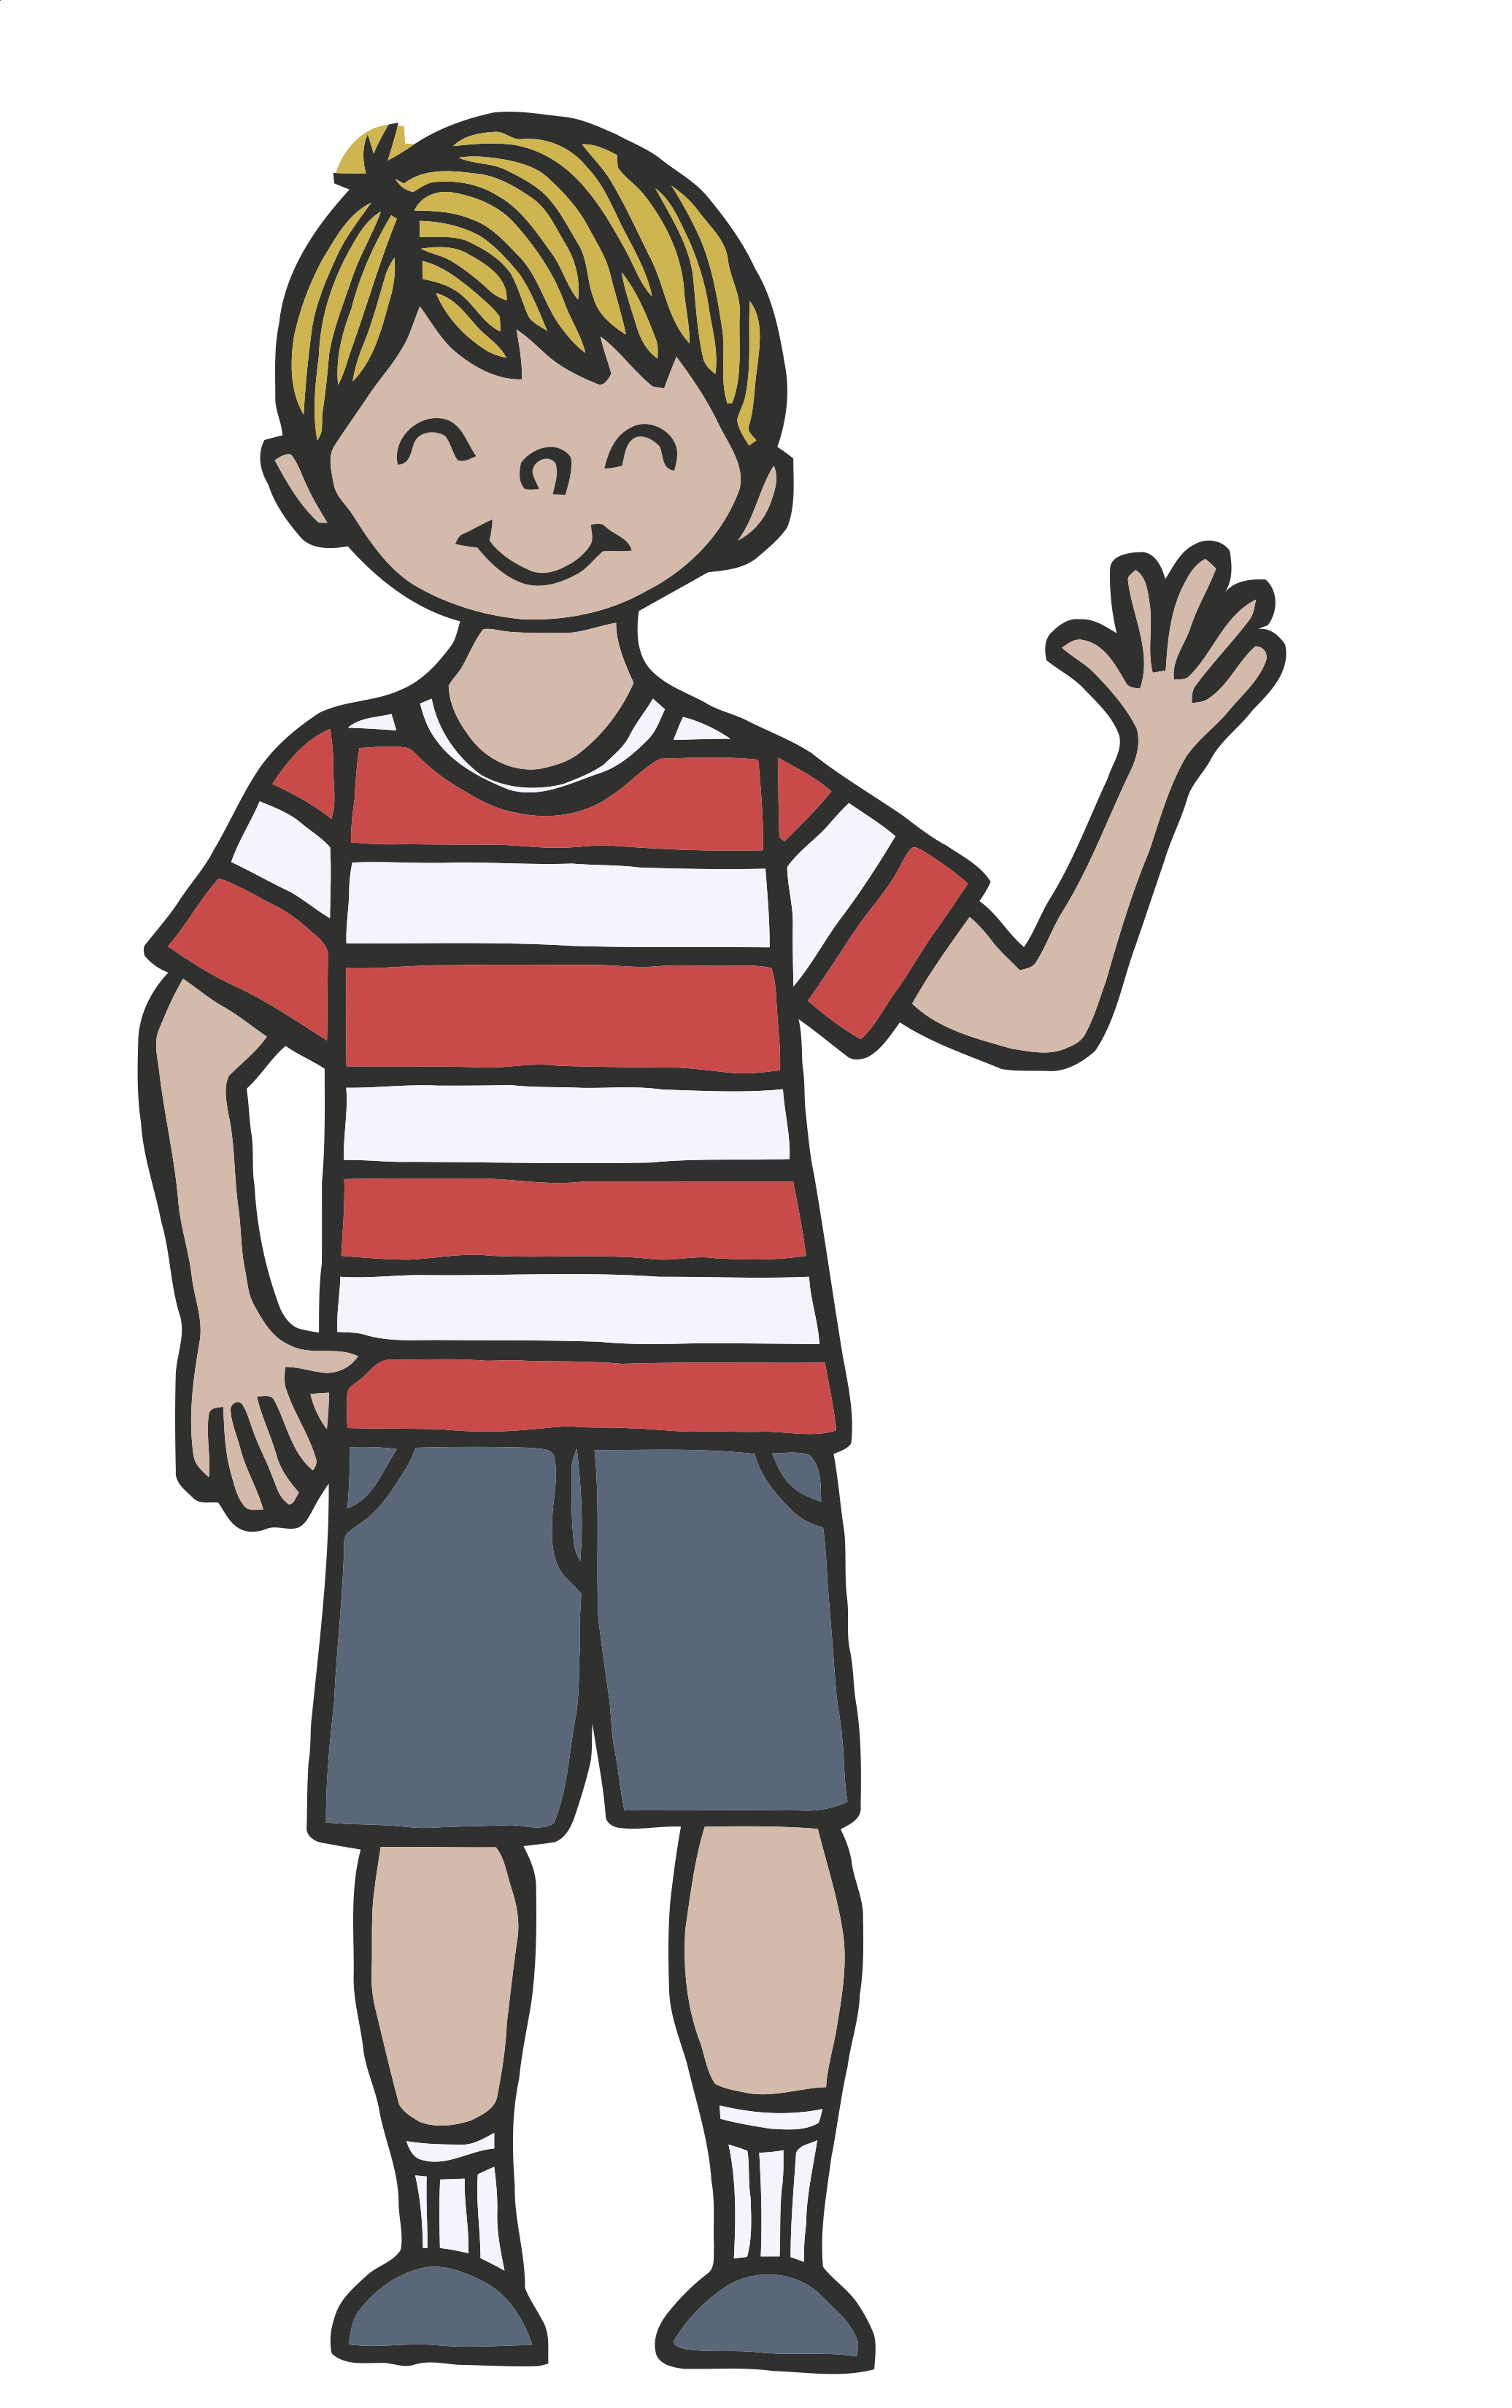 Kid waving bye black and white clipart graphic free stock Child waving goodbye clipart – Gclipart.com graphic free stock